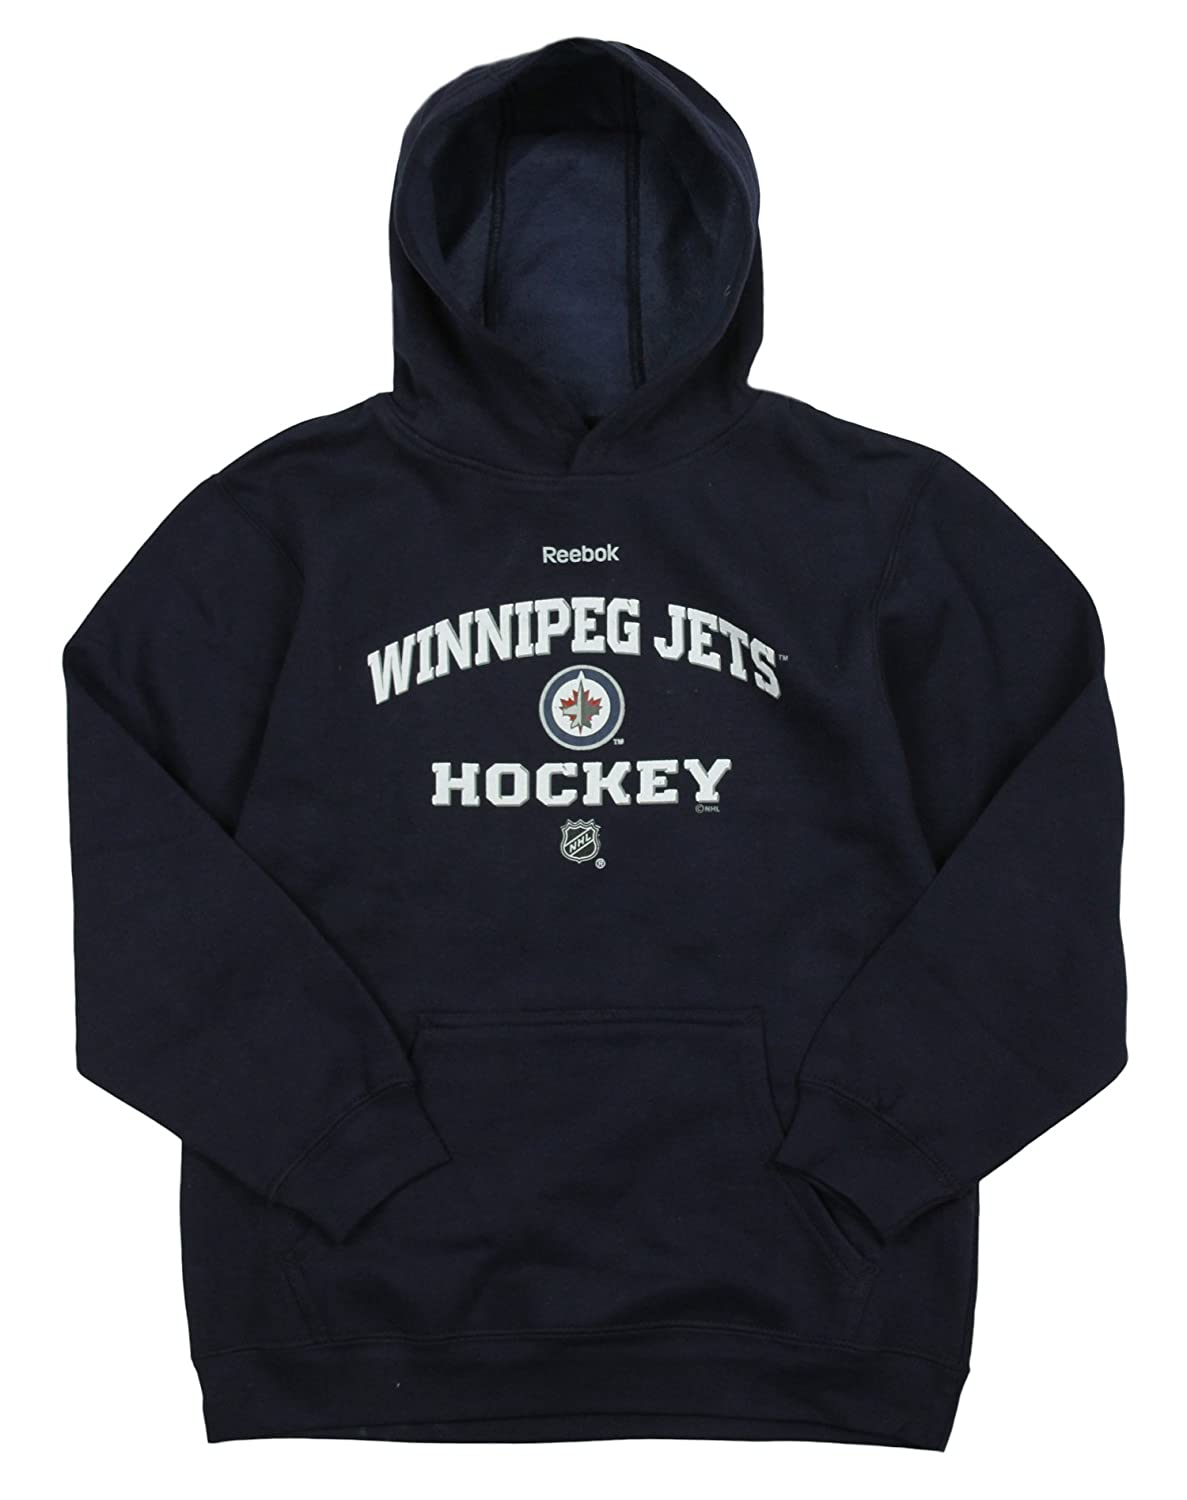 Winnipeg Jets NHL Reebok Youth Navy Fleece Hoodie